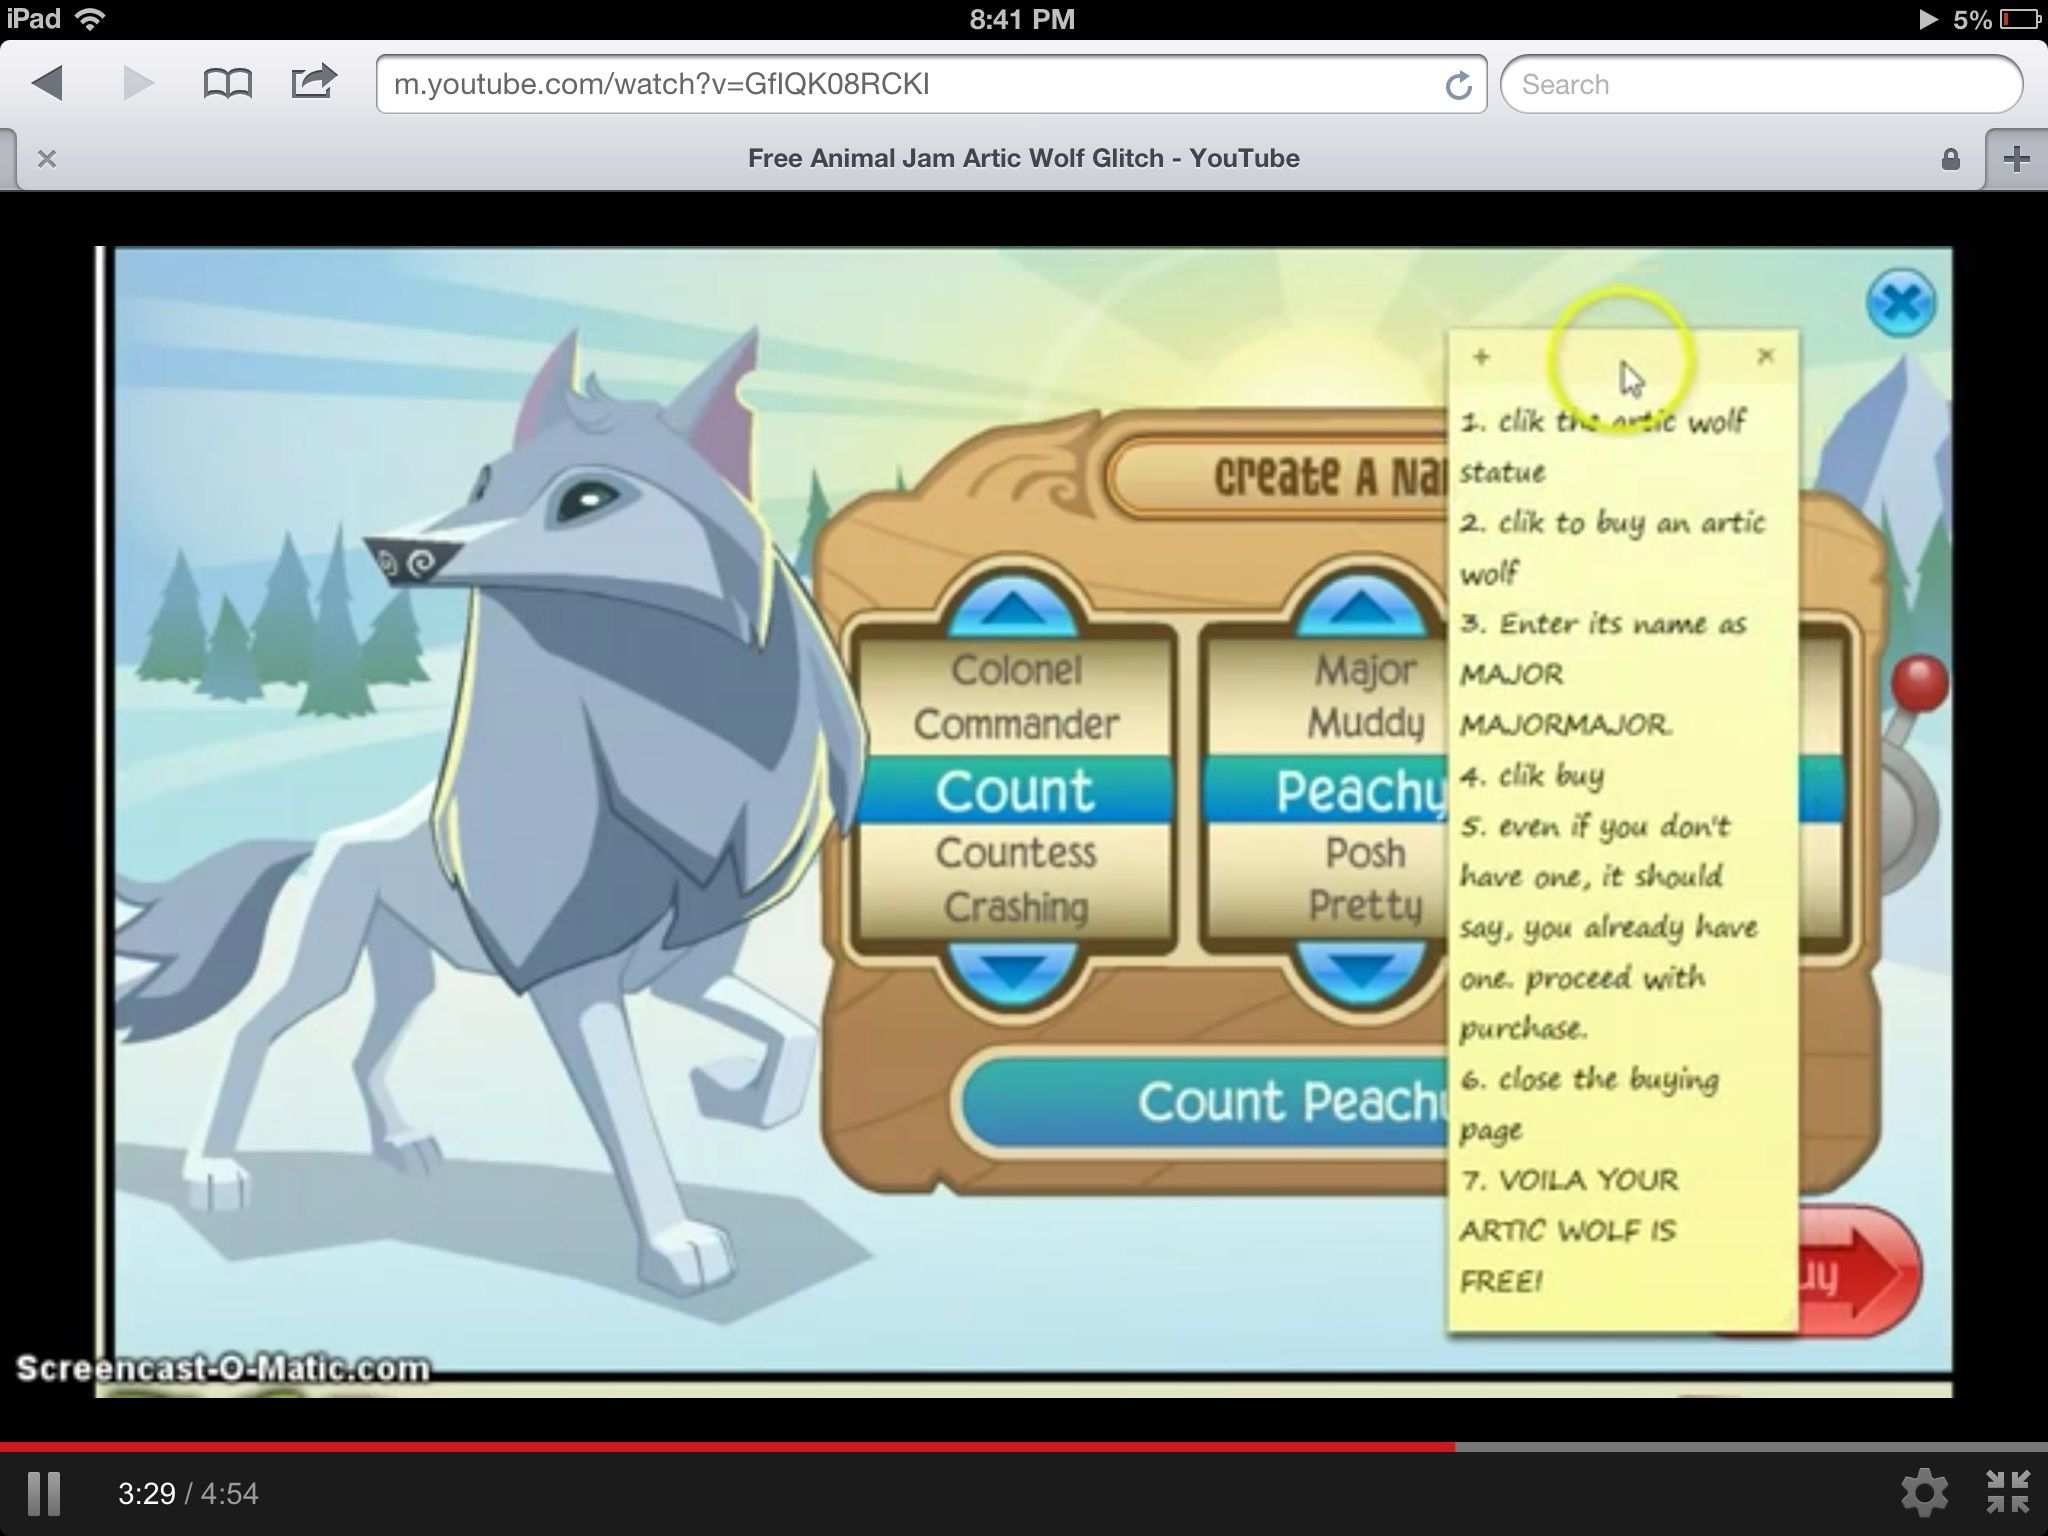 Aparently This Is How U Get A Free Arctic Wolf Btw My Name Is